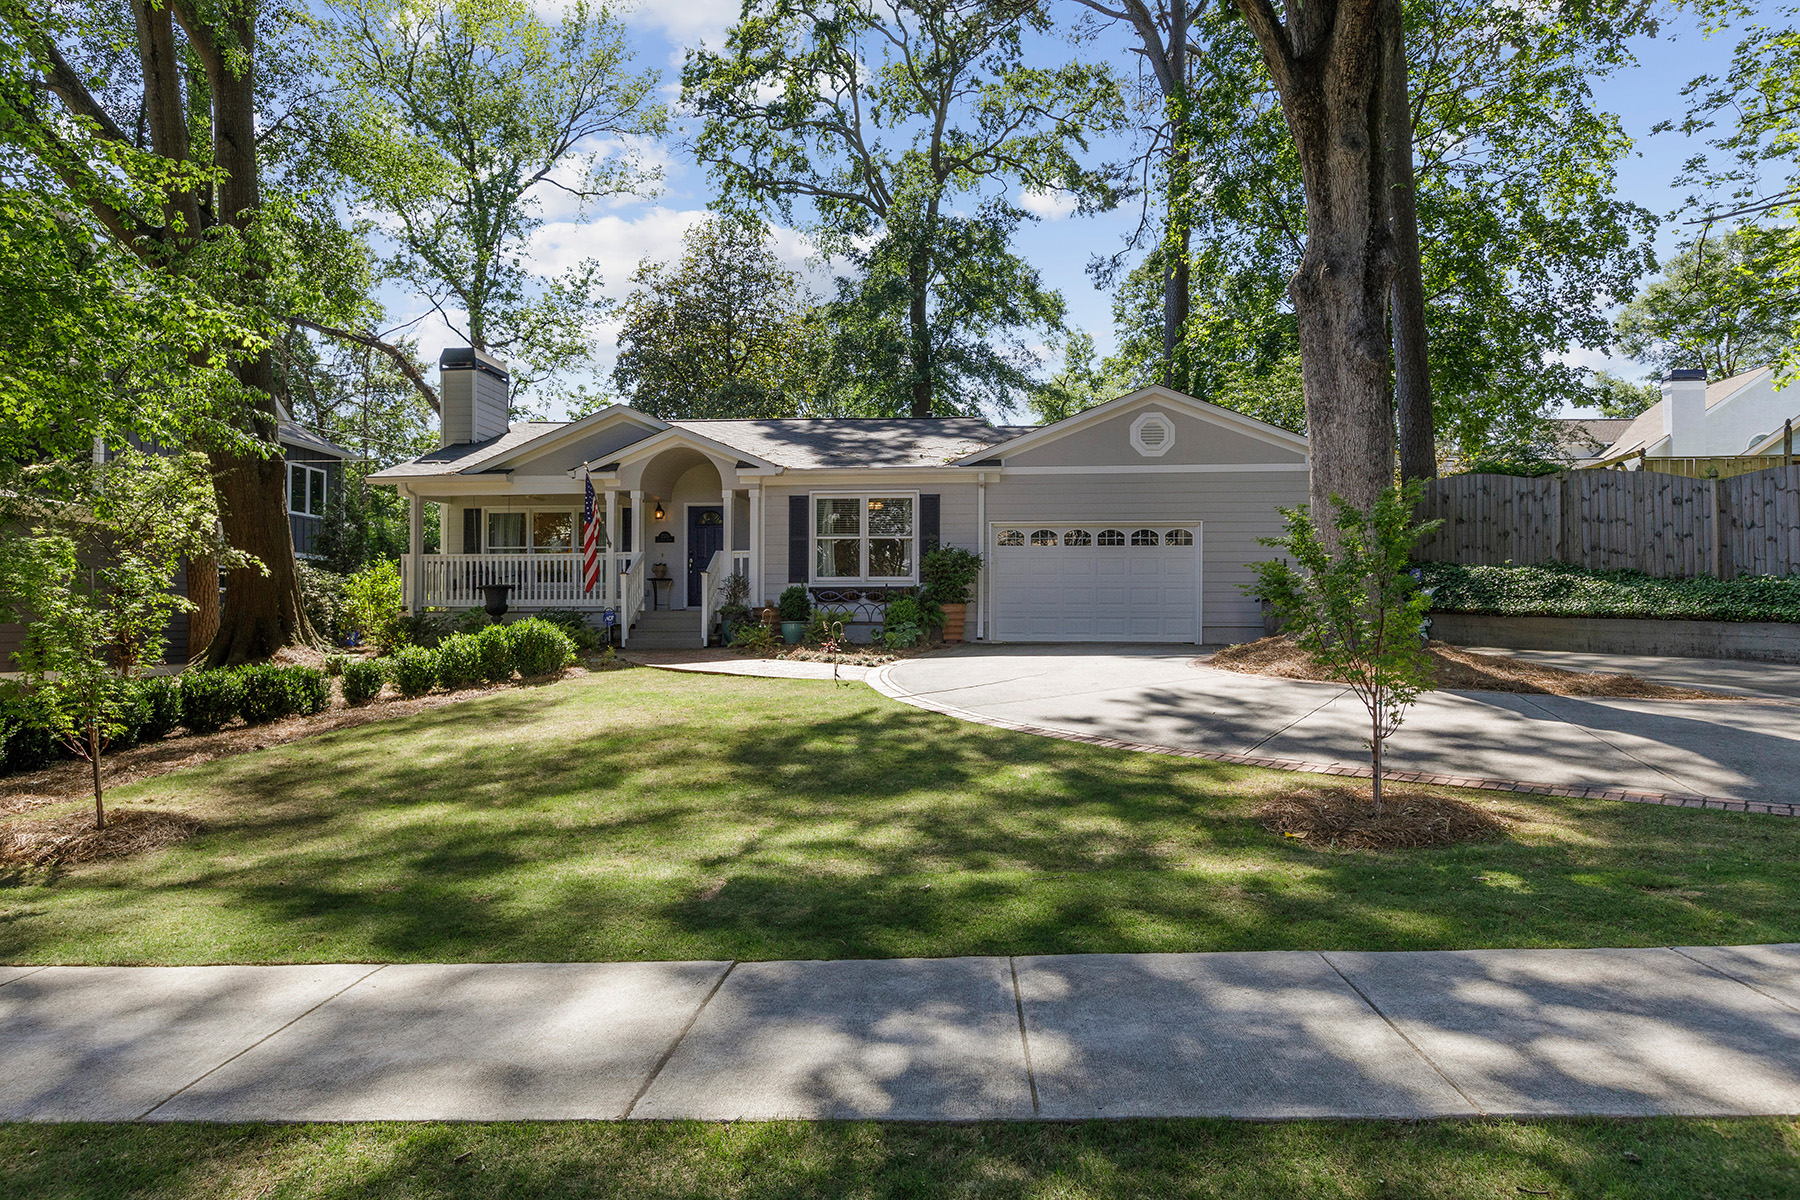 Single Family Homes for Sale at BROOKHAVEN BUNGALOW 2370 Colonial Drive Brookhaven, Georgia 30319 United States